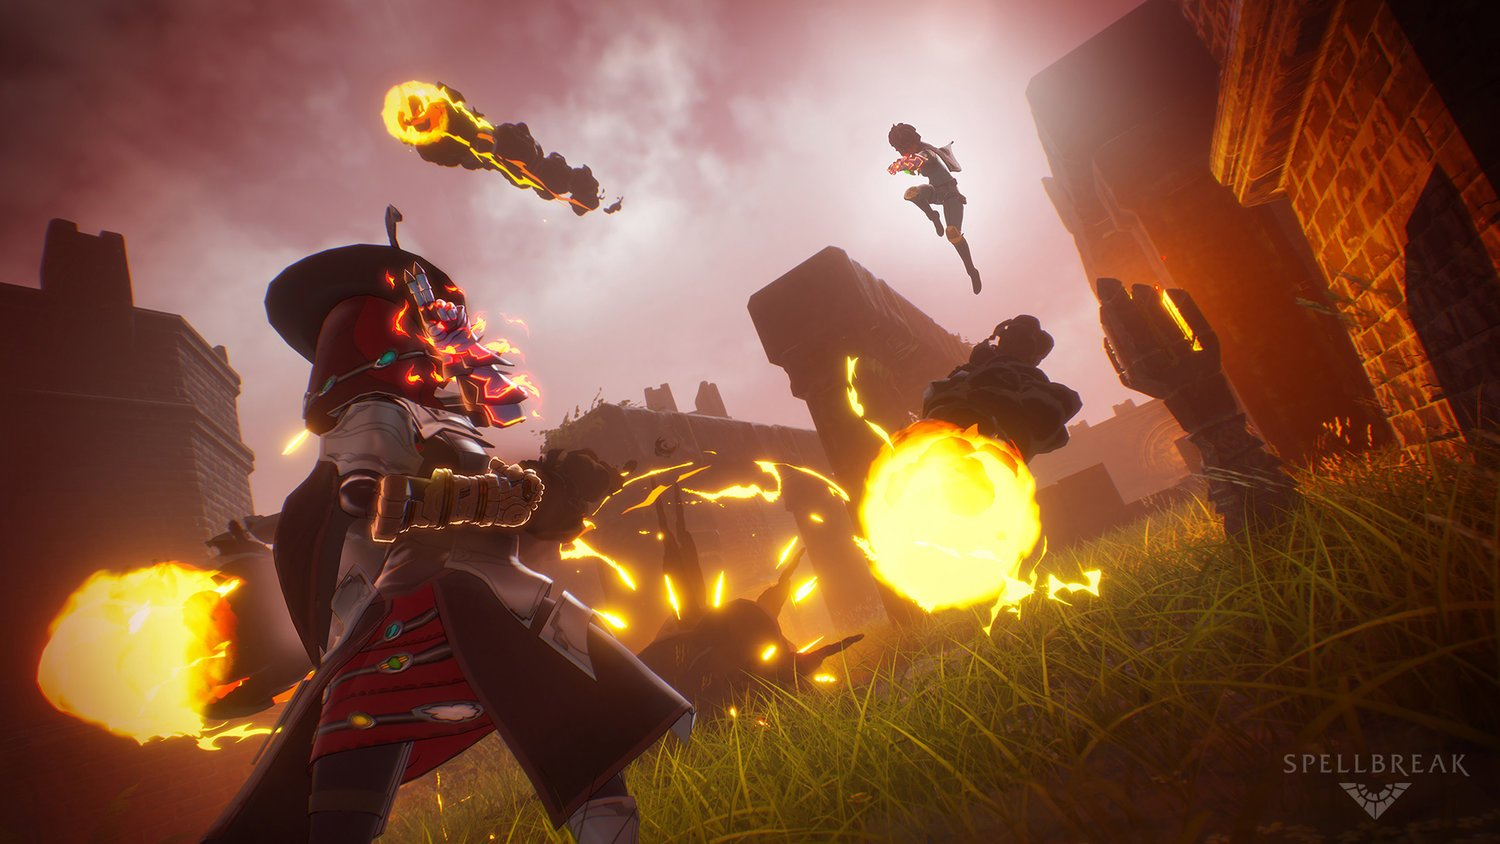 Why You Should Be Excited About Spellbreak